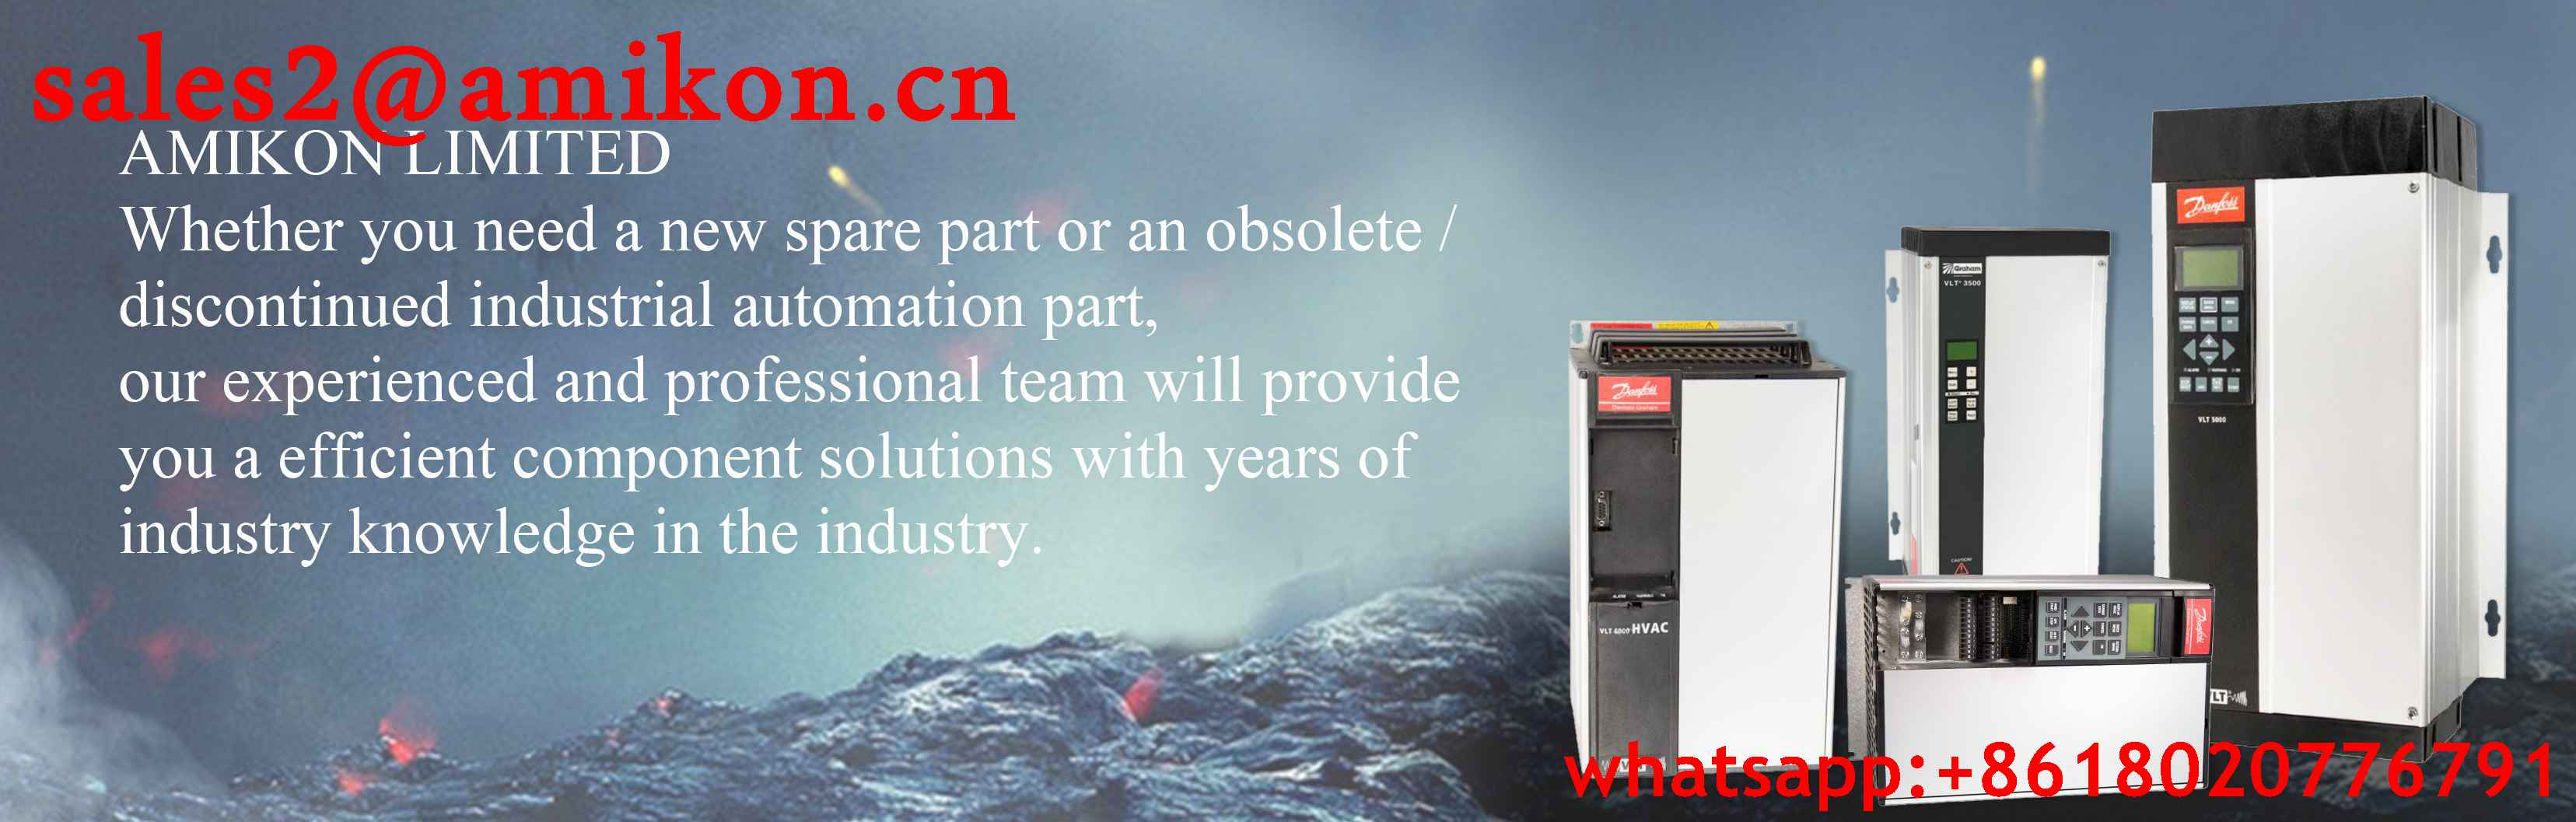 IC697BEM742 GE General Electric sales2@amikon.cn PLC DCS Industry Control System Module